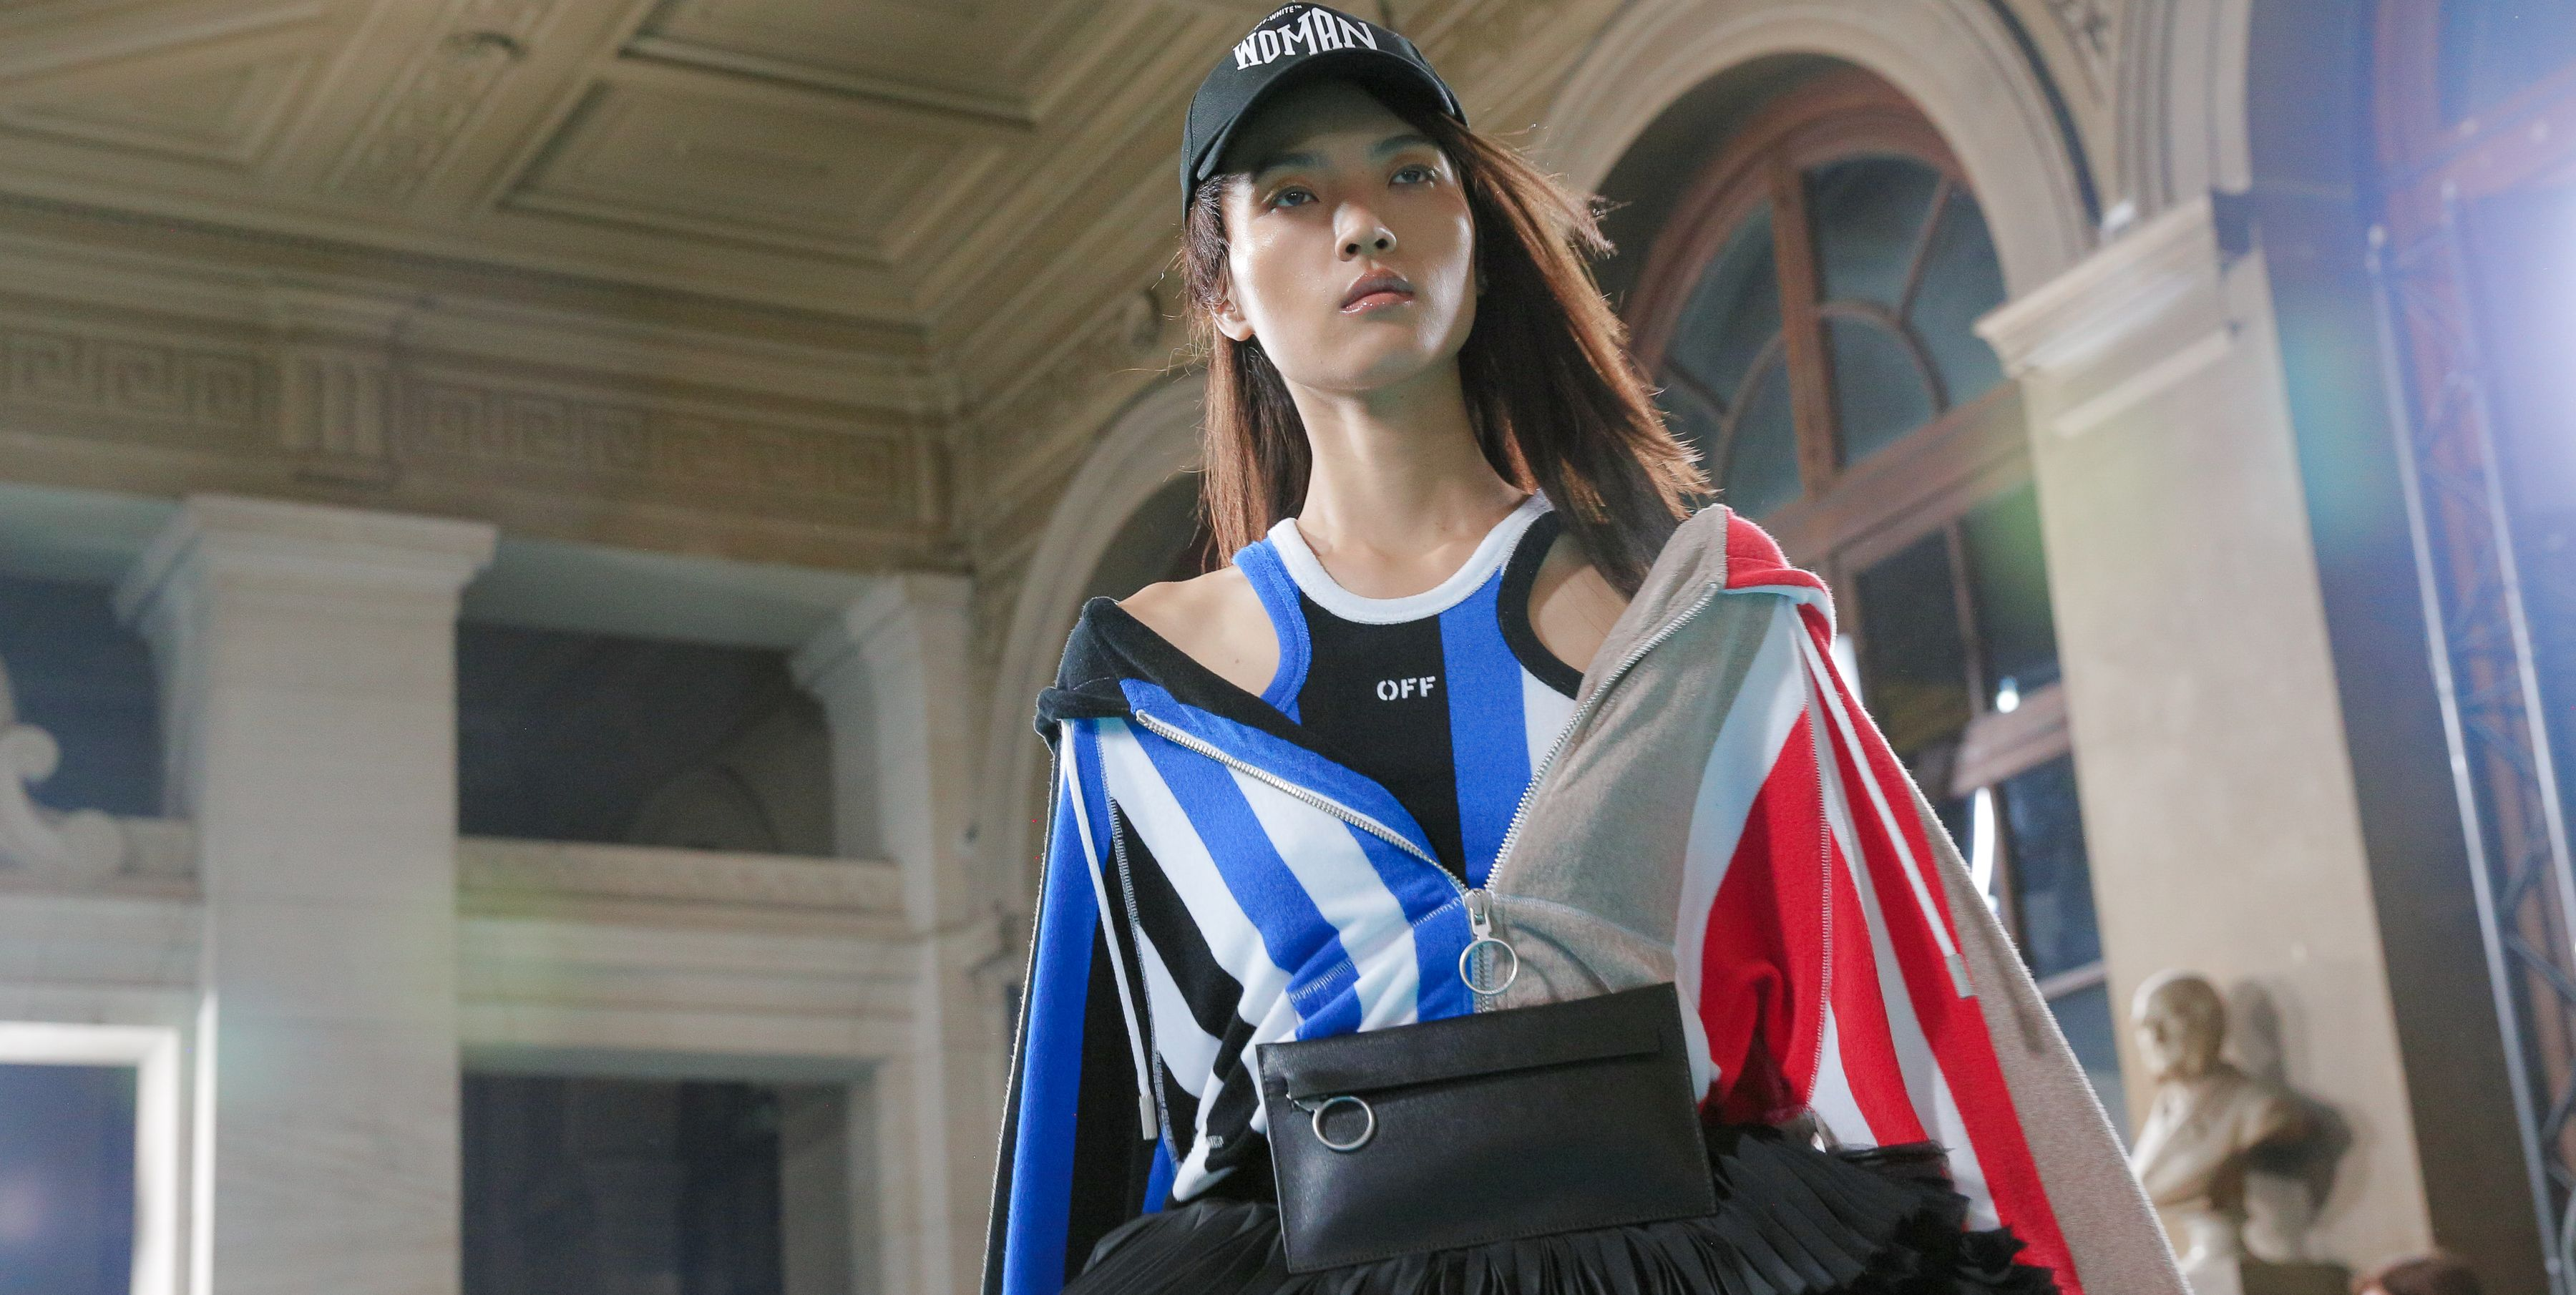 Fanny Packs Are Summer's Hottest Accessories Trend